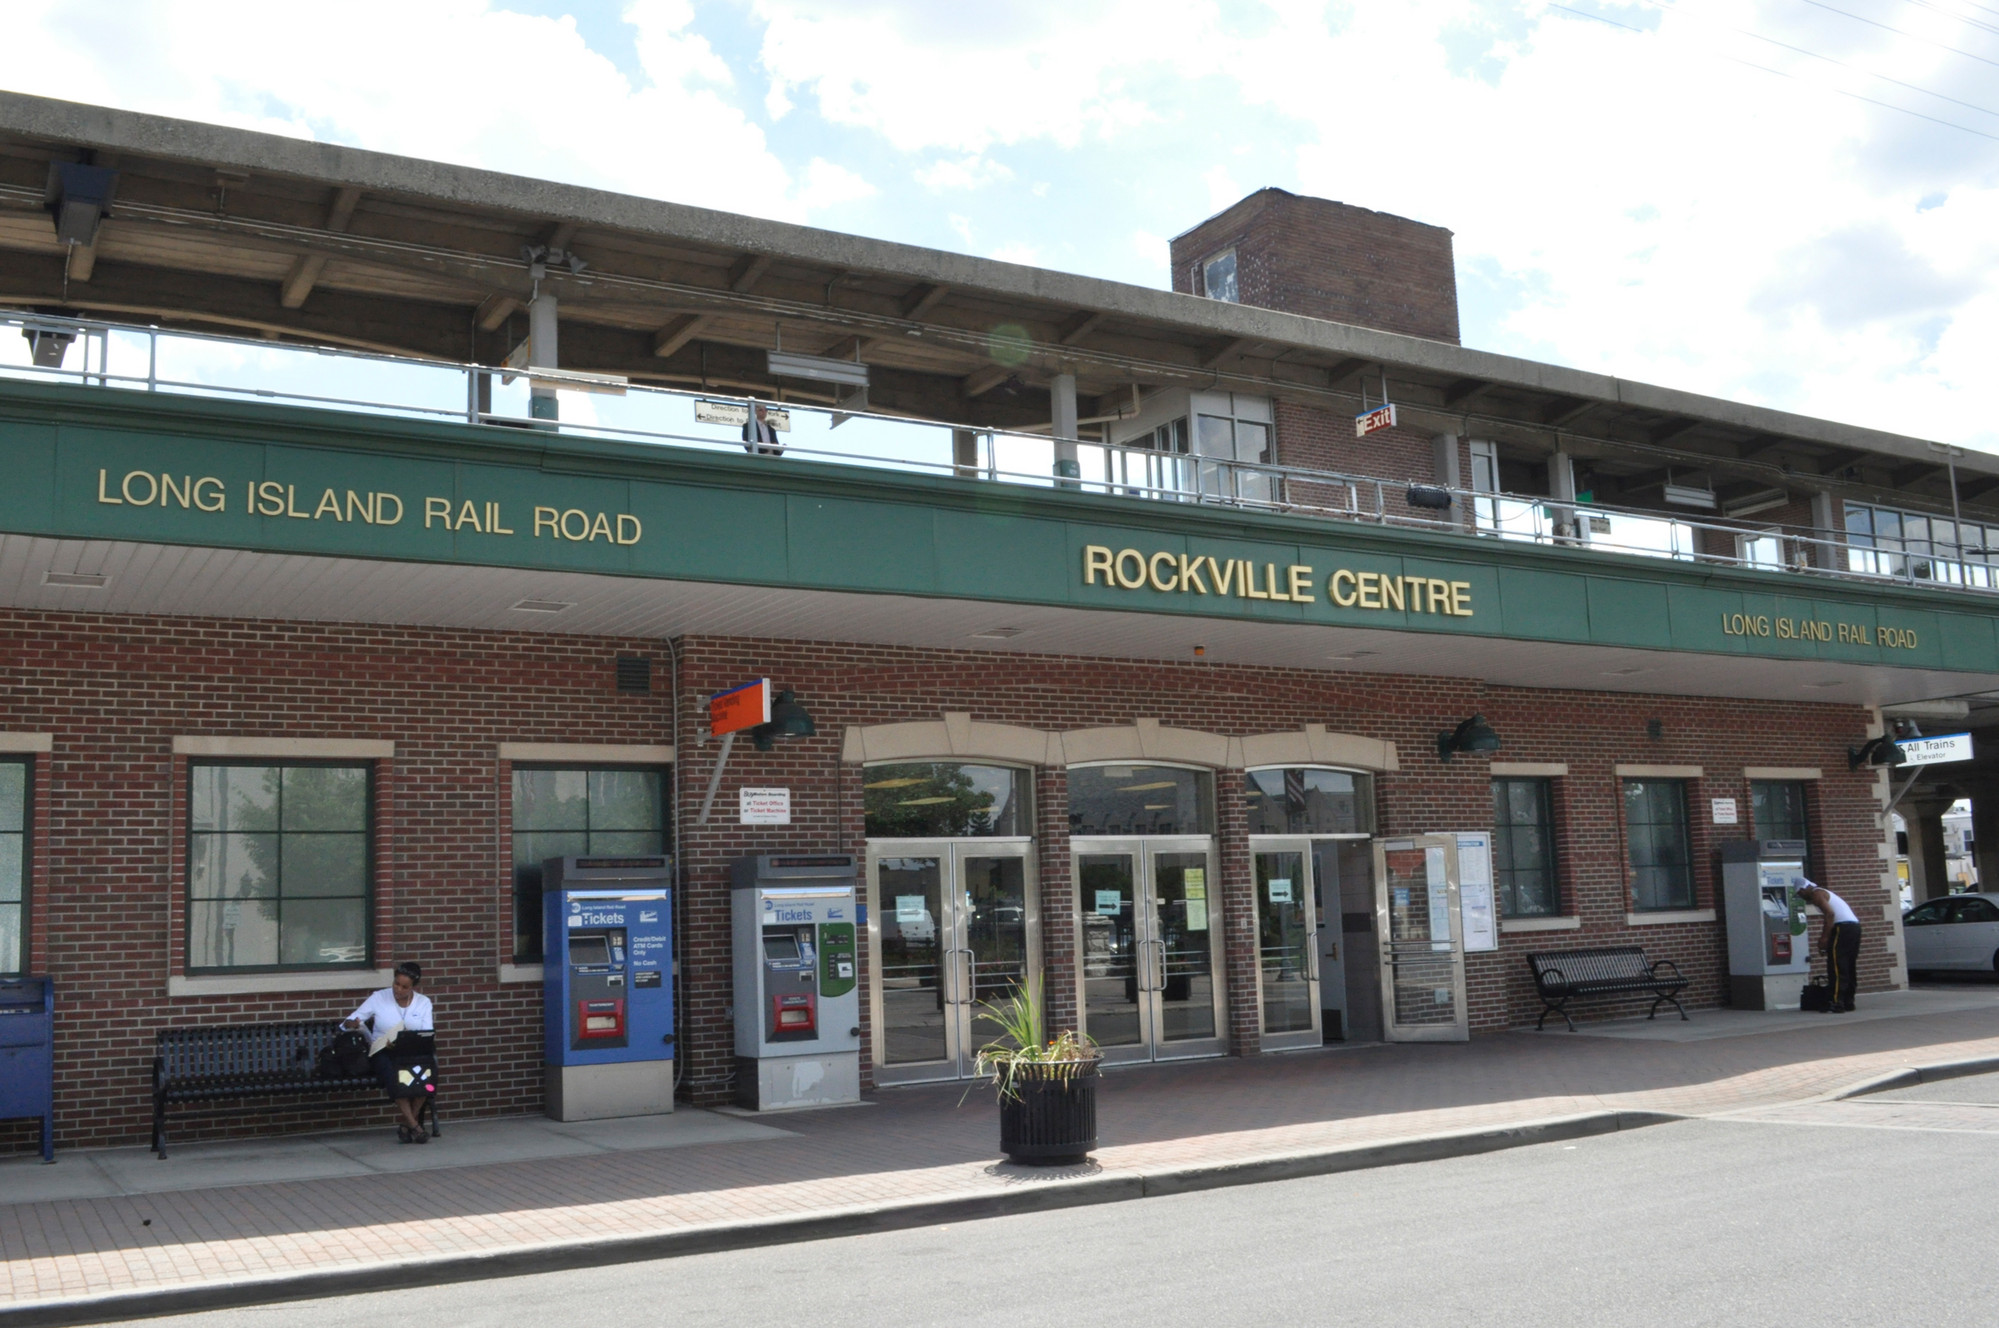 Two women were robbed, and one was attacked, near the Rockville Centre station this weekend.